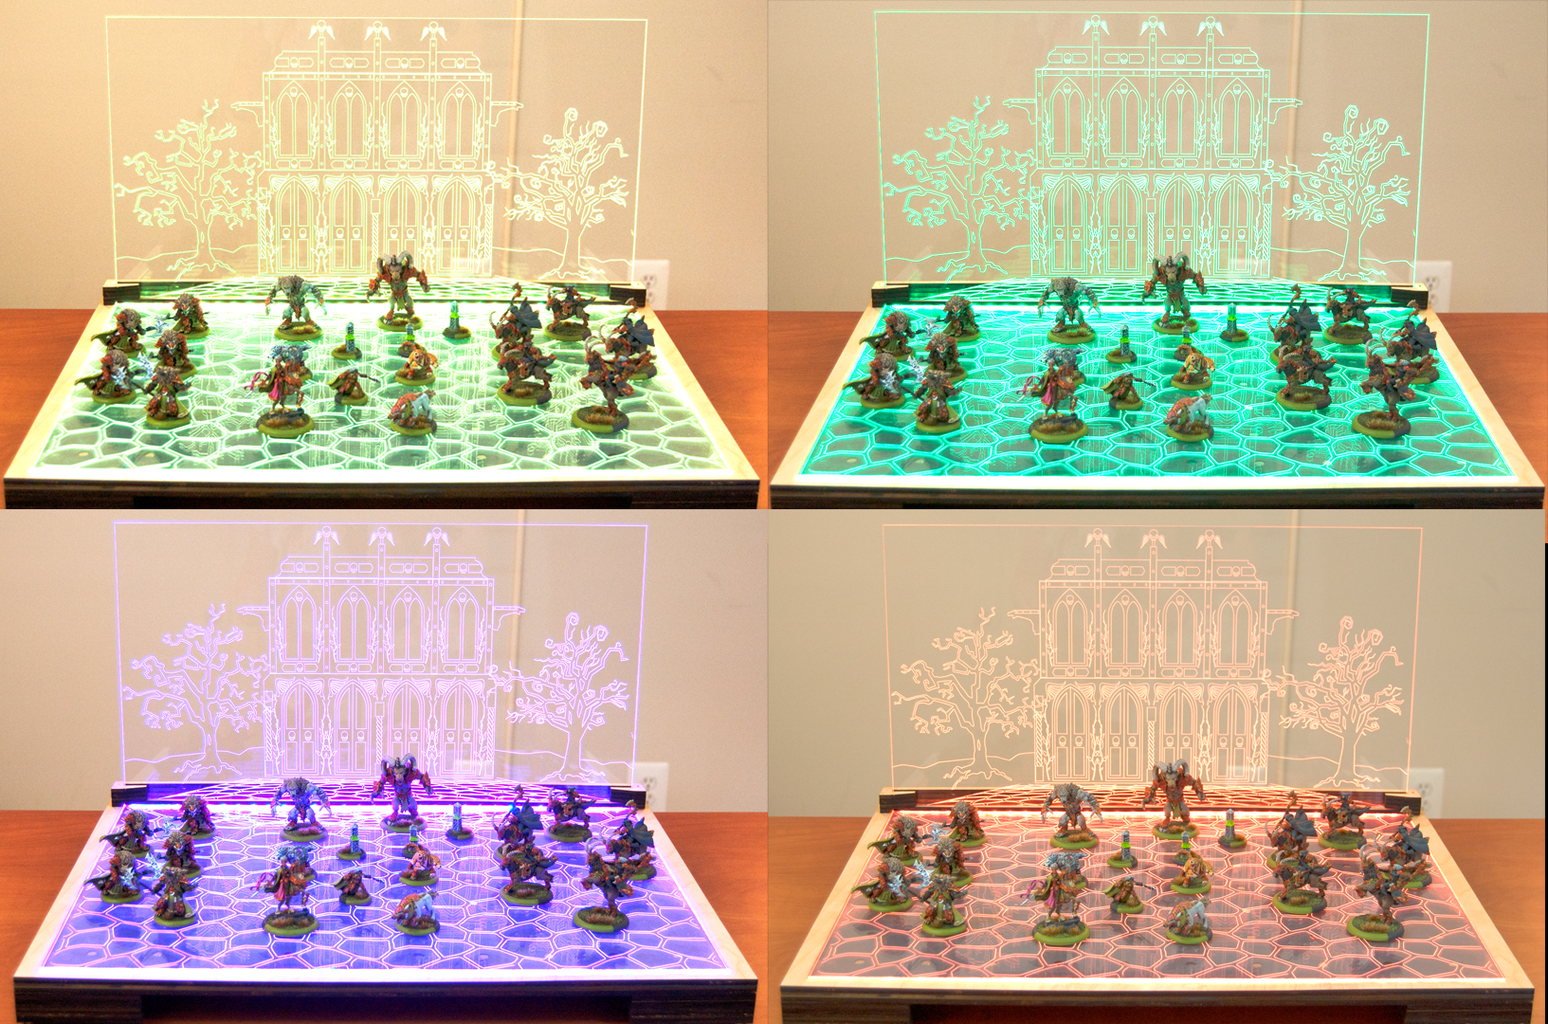 Arrange Your Models! and Watch the Video...